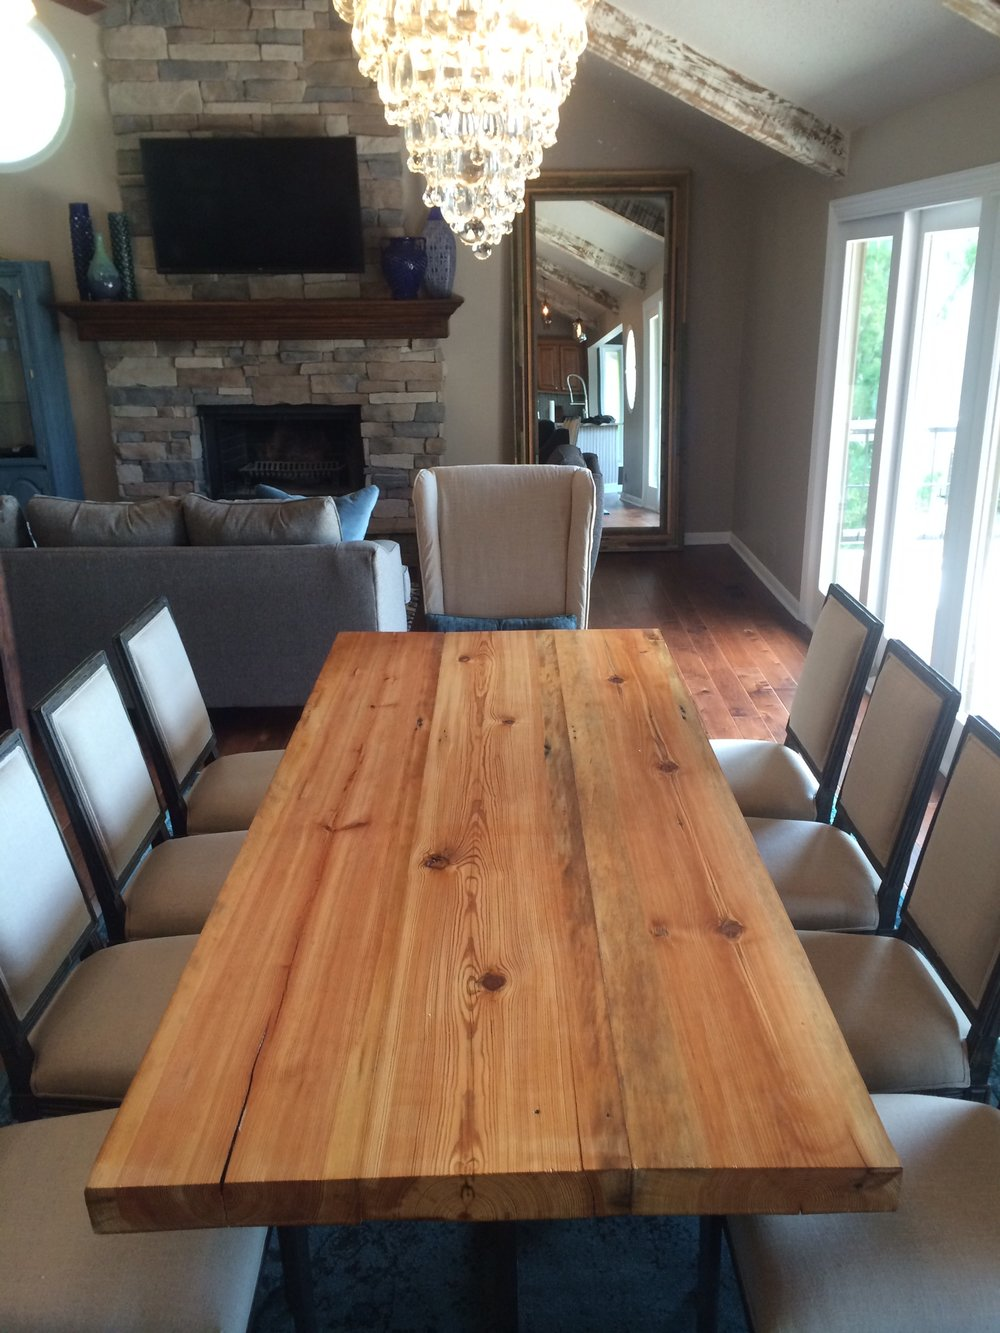 This industrial table Cody created, paired with the traditional/modern chairs creates the perfect gathering space.